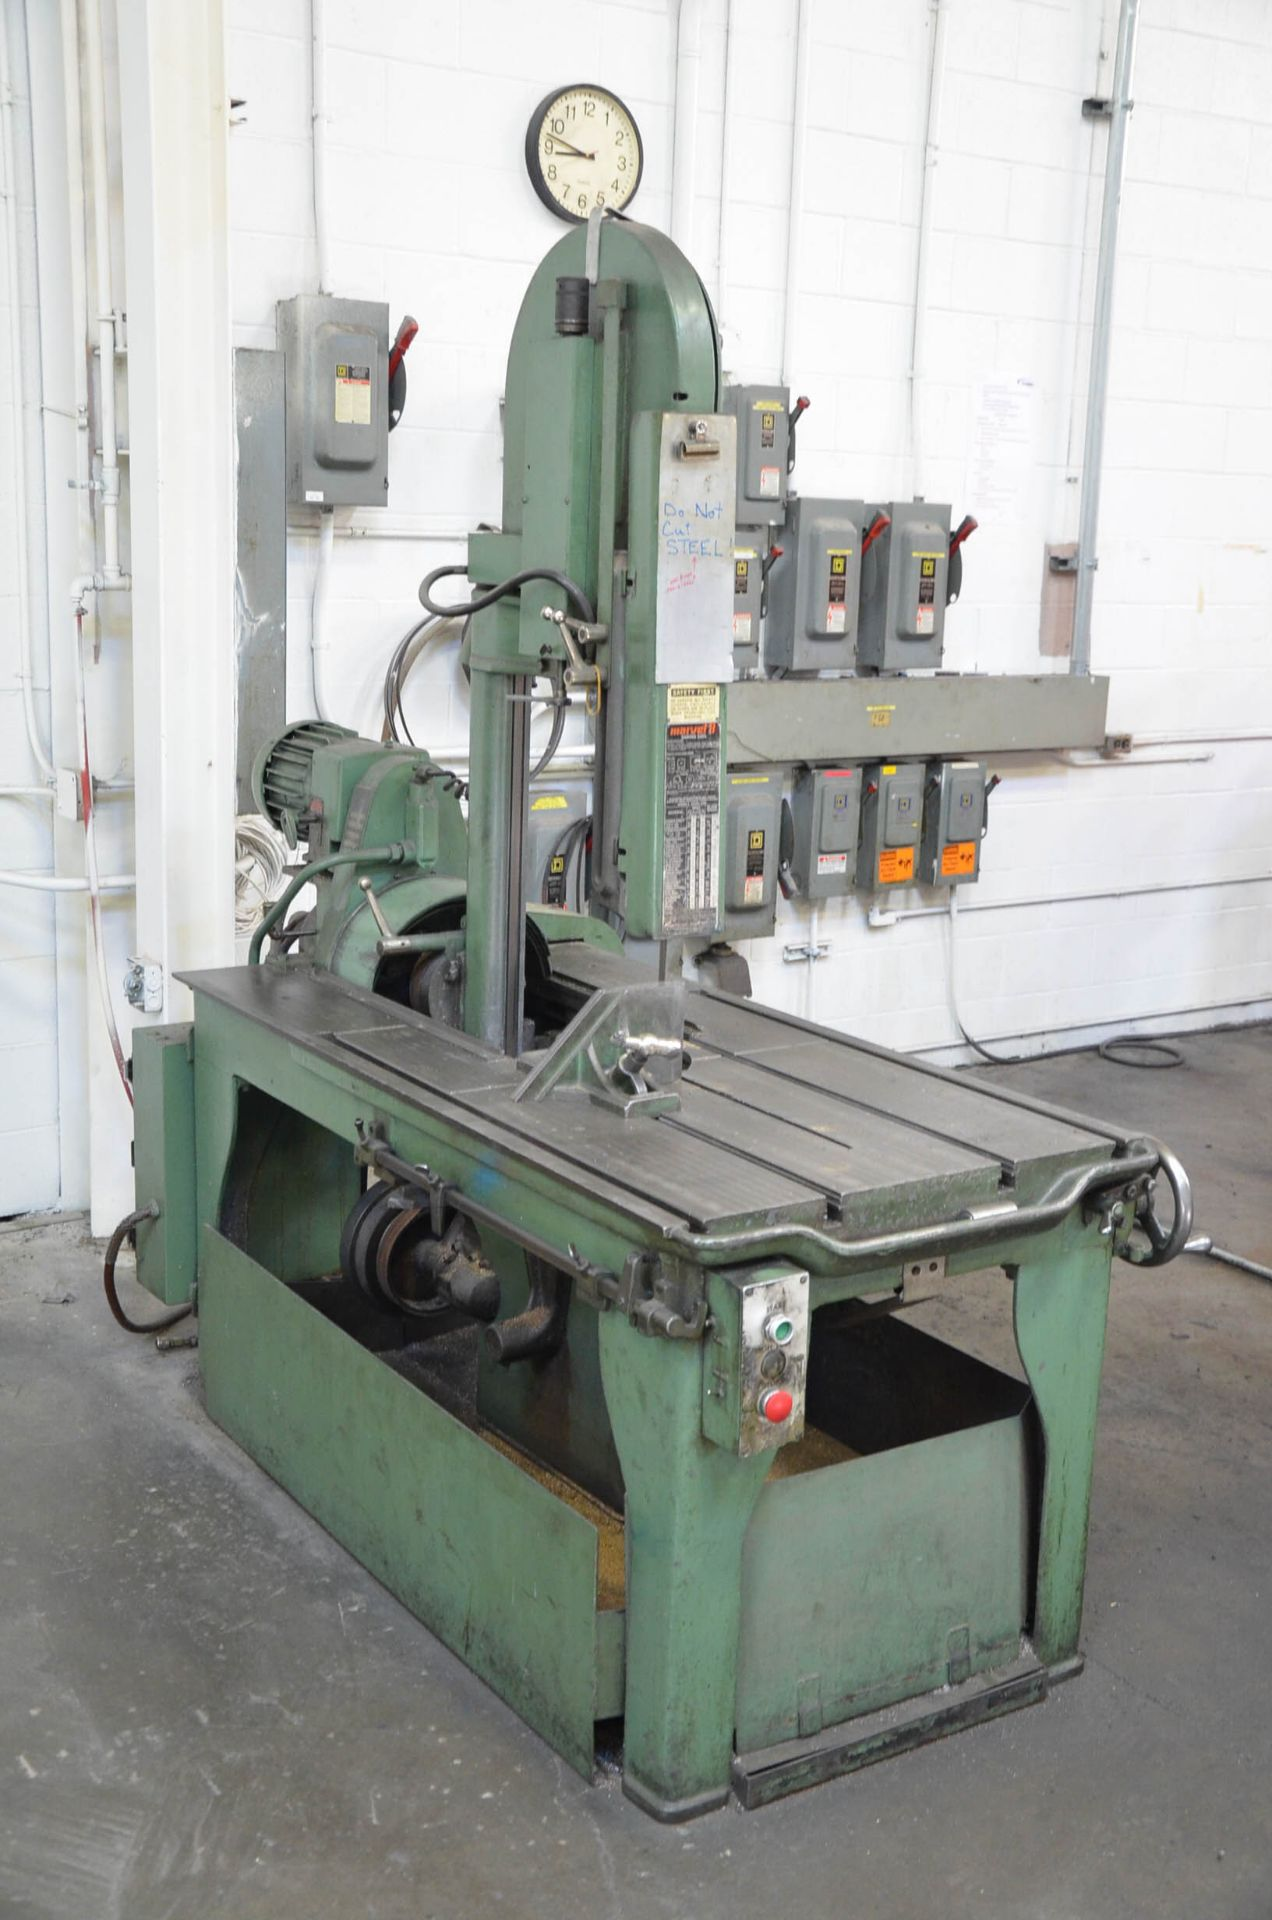 """MARVEL SERIES 8 TILTING HEAD SLIDING FRAME VERTICAL BAND SAW WITH 17"""" THROAT, 12"""" MAX WORKPIECE - Image 3 of 4"""